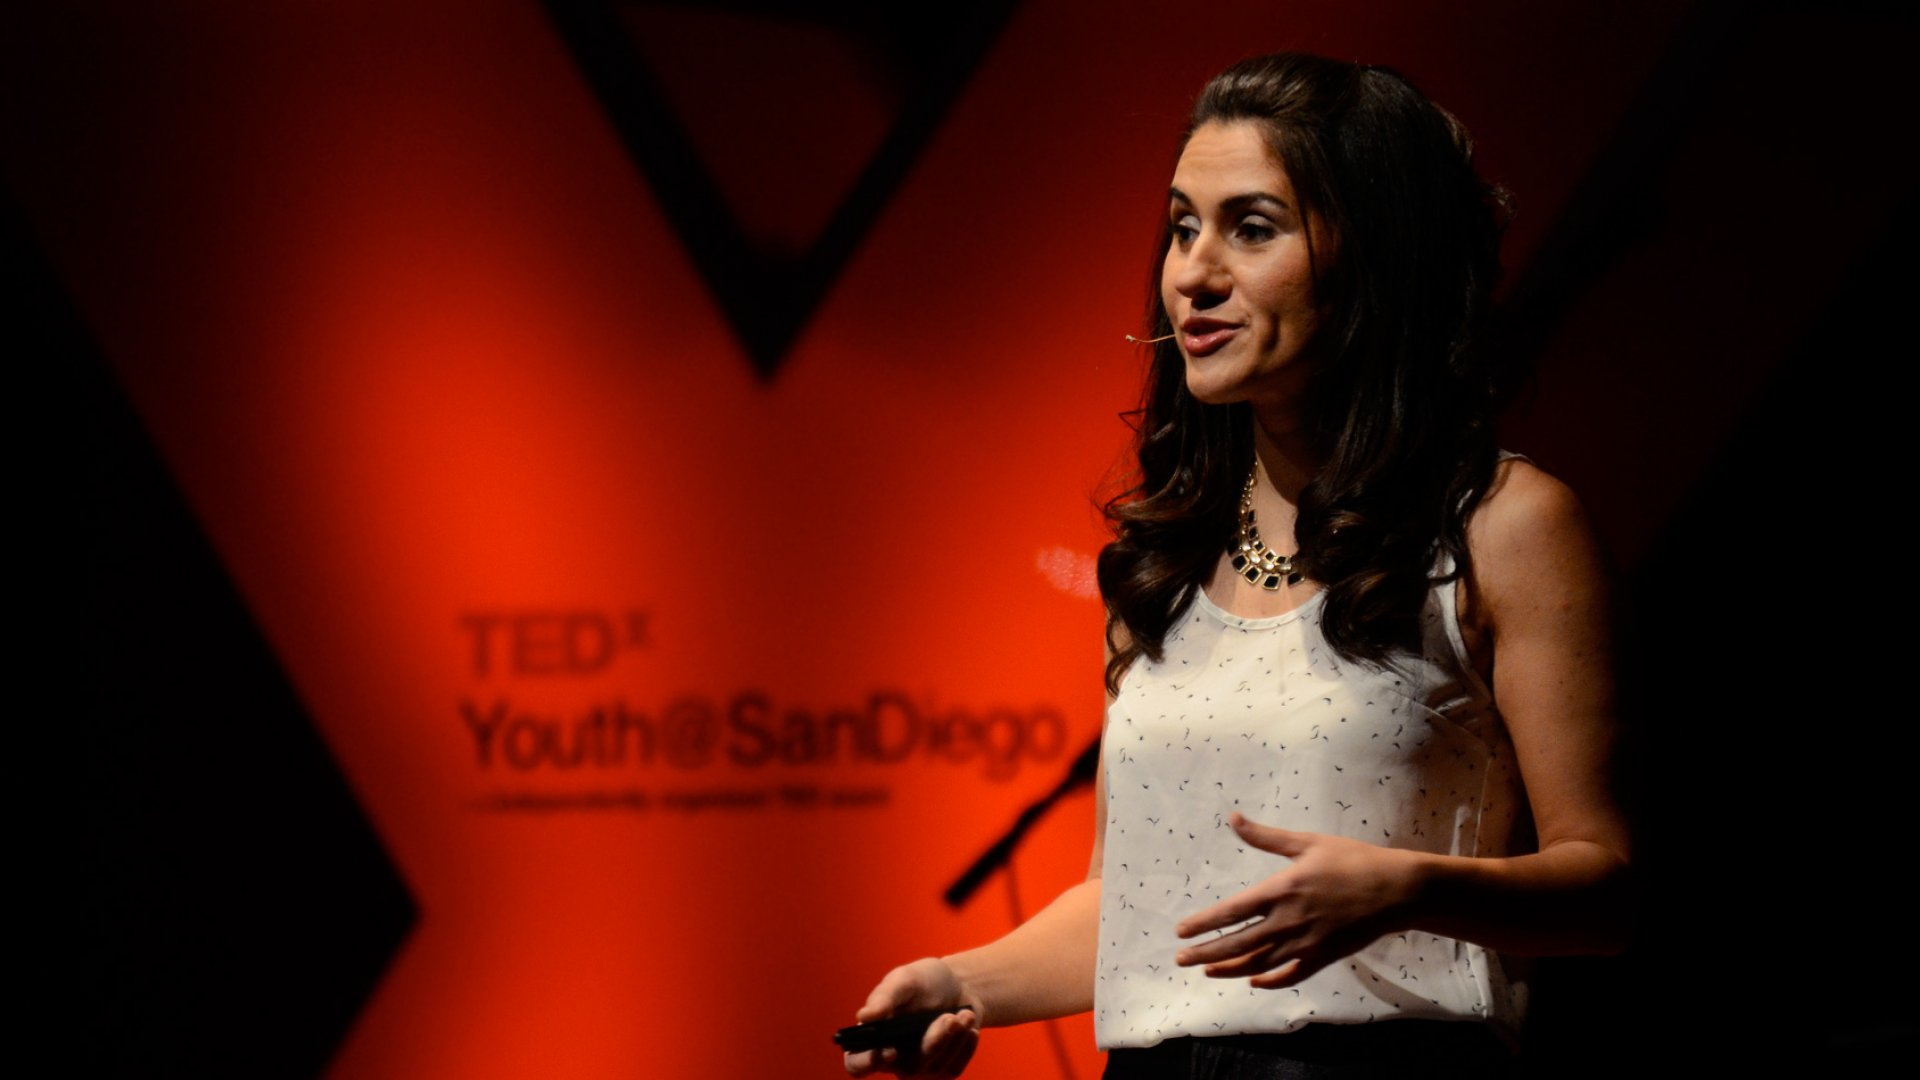 Carbs Anyone? An Interview With Shabnam Mogharabi, CEO of SoulPancake